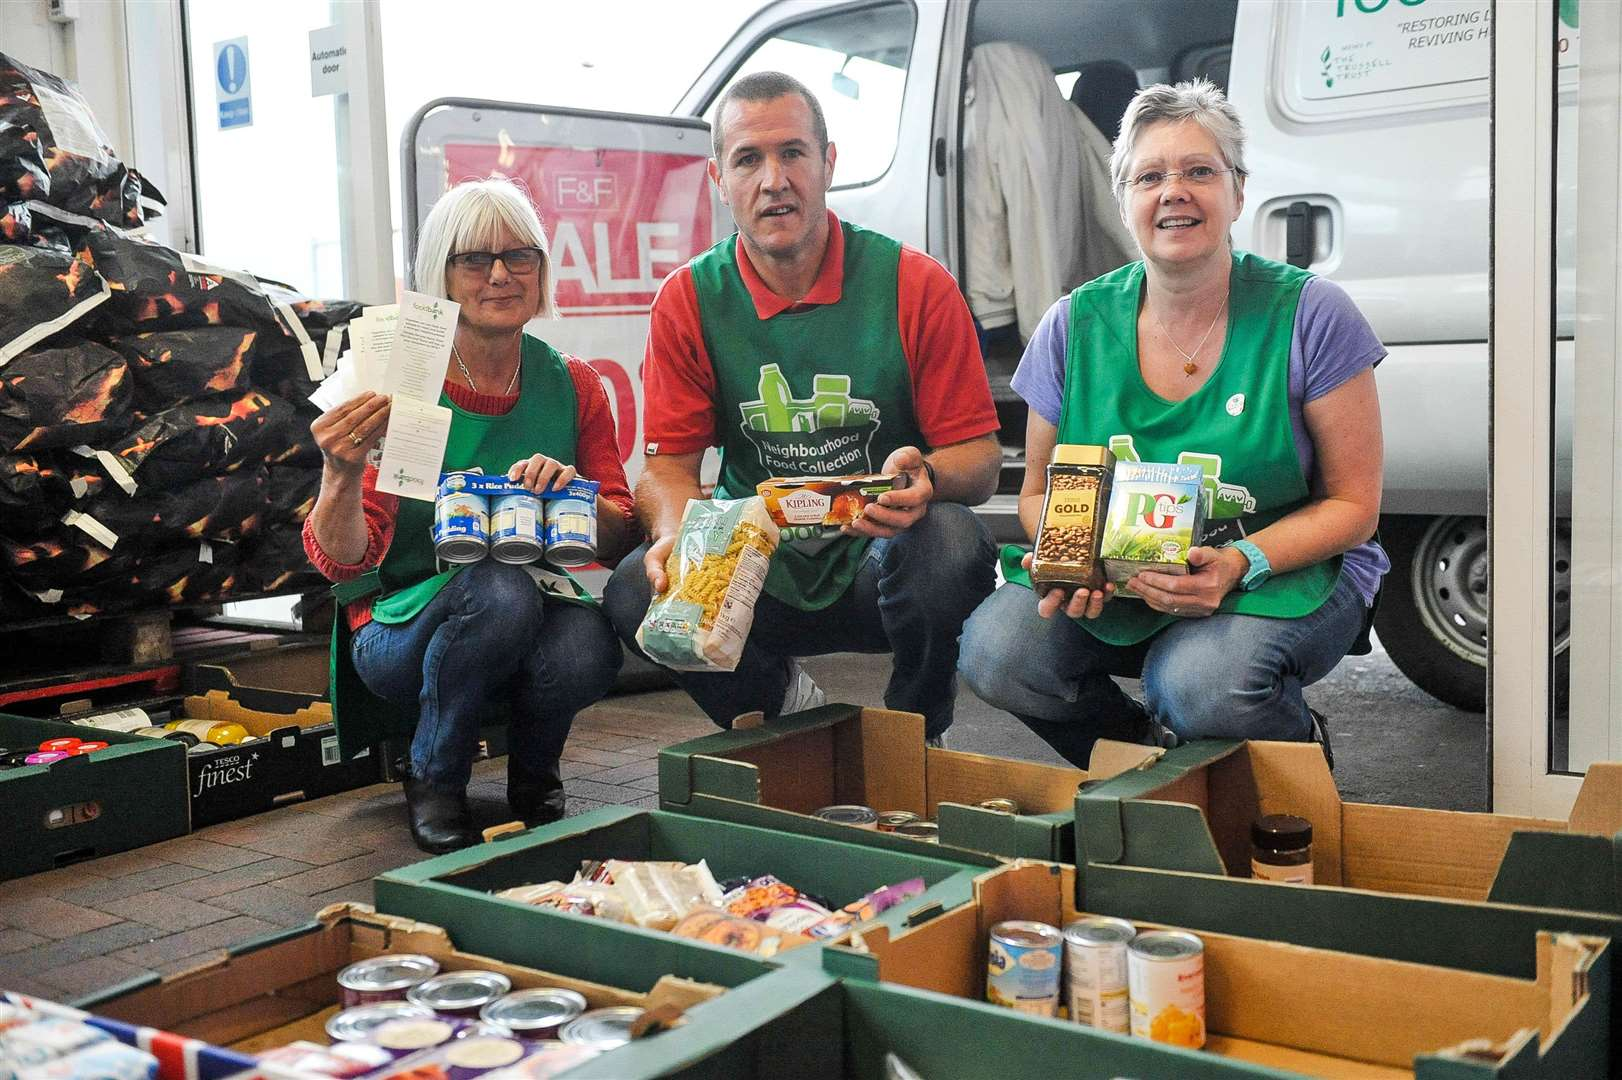 Lesley Cogger, Gavin McConkey and Ann Allen (right) at a previous food collection by Tesco for the Haverhill Foodbank